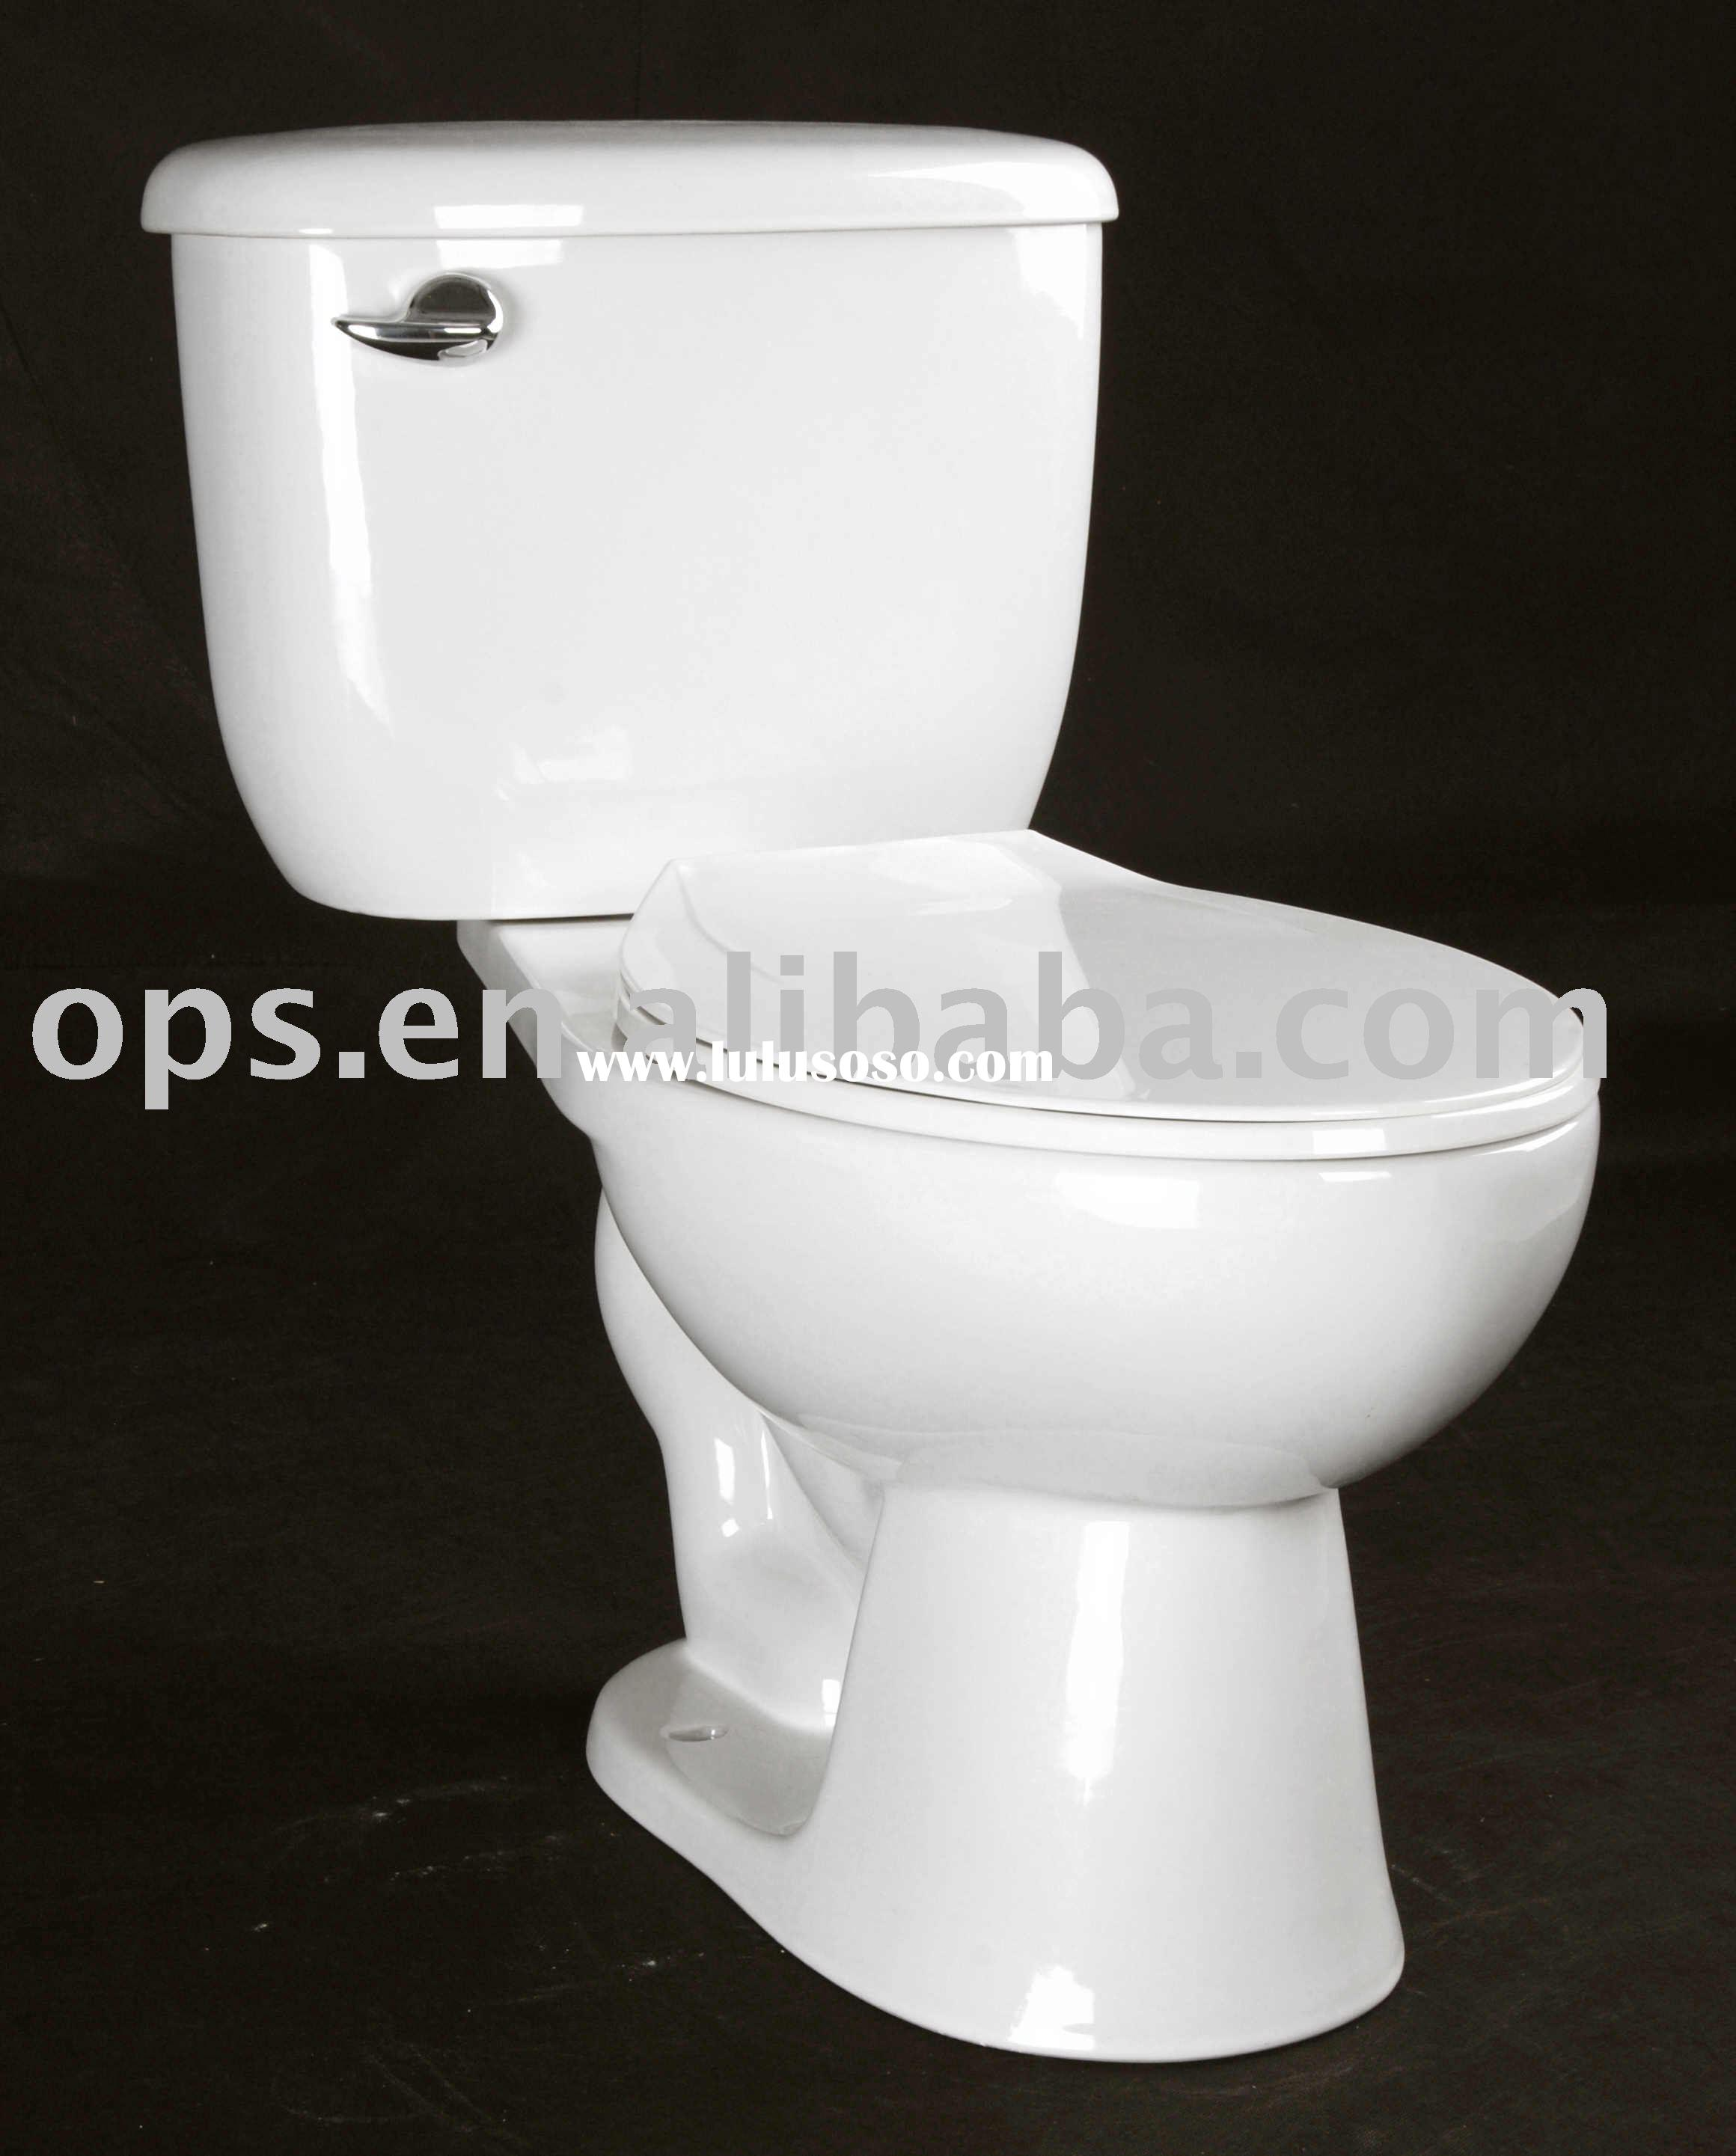 Ceramic Two-Piece Toilet, UPC & cUPC Certified (T/X-6810En)